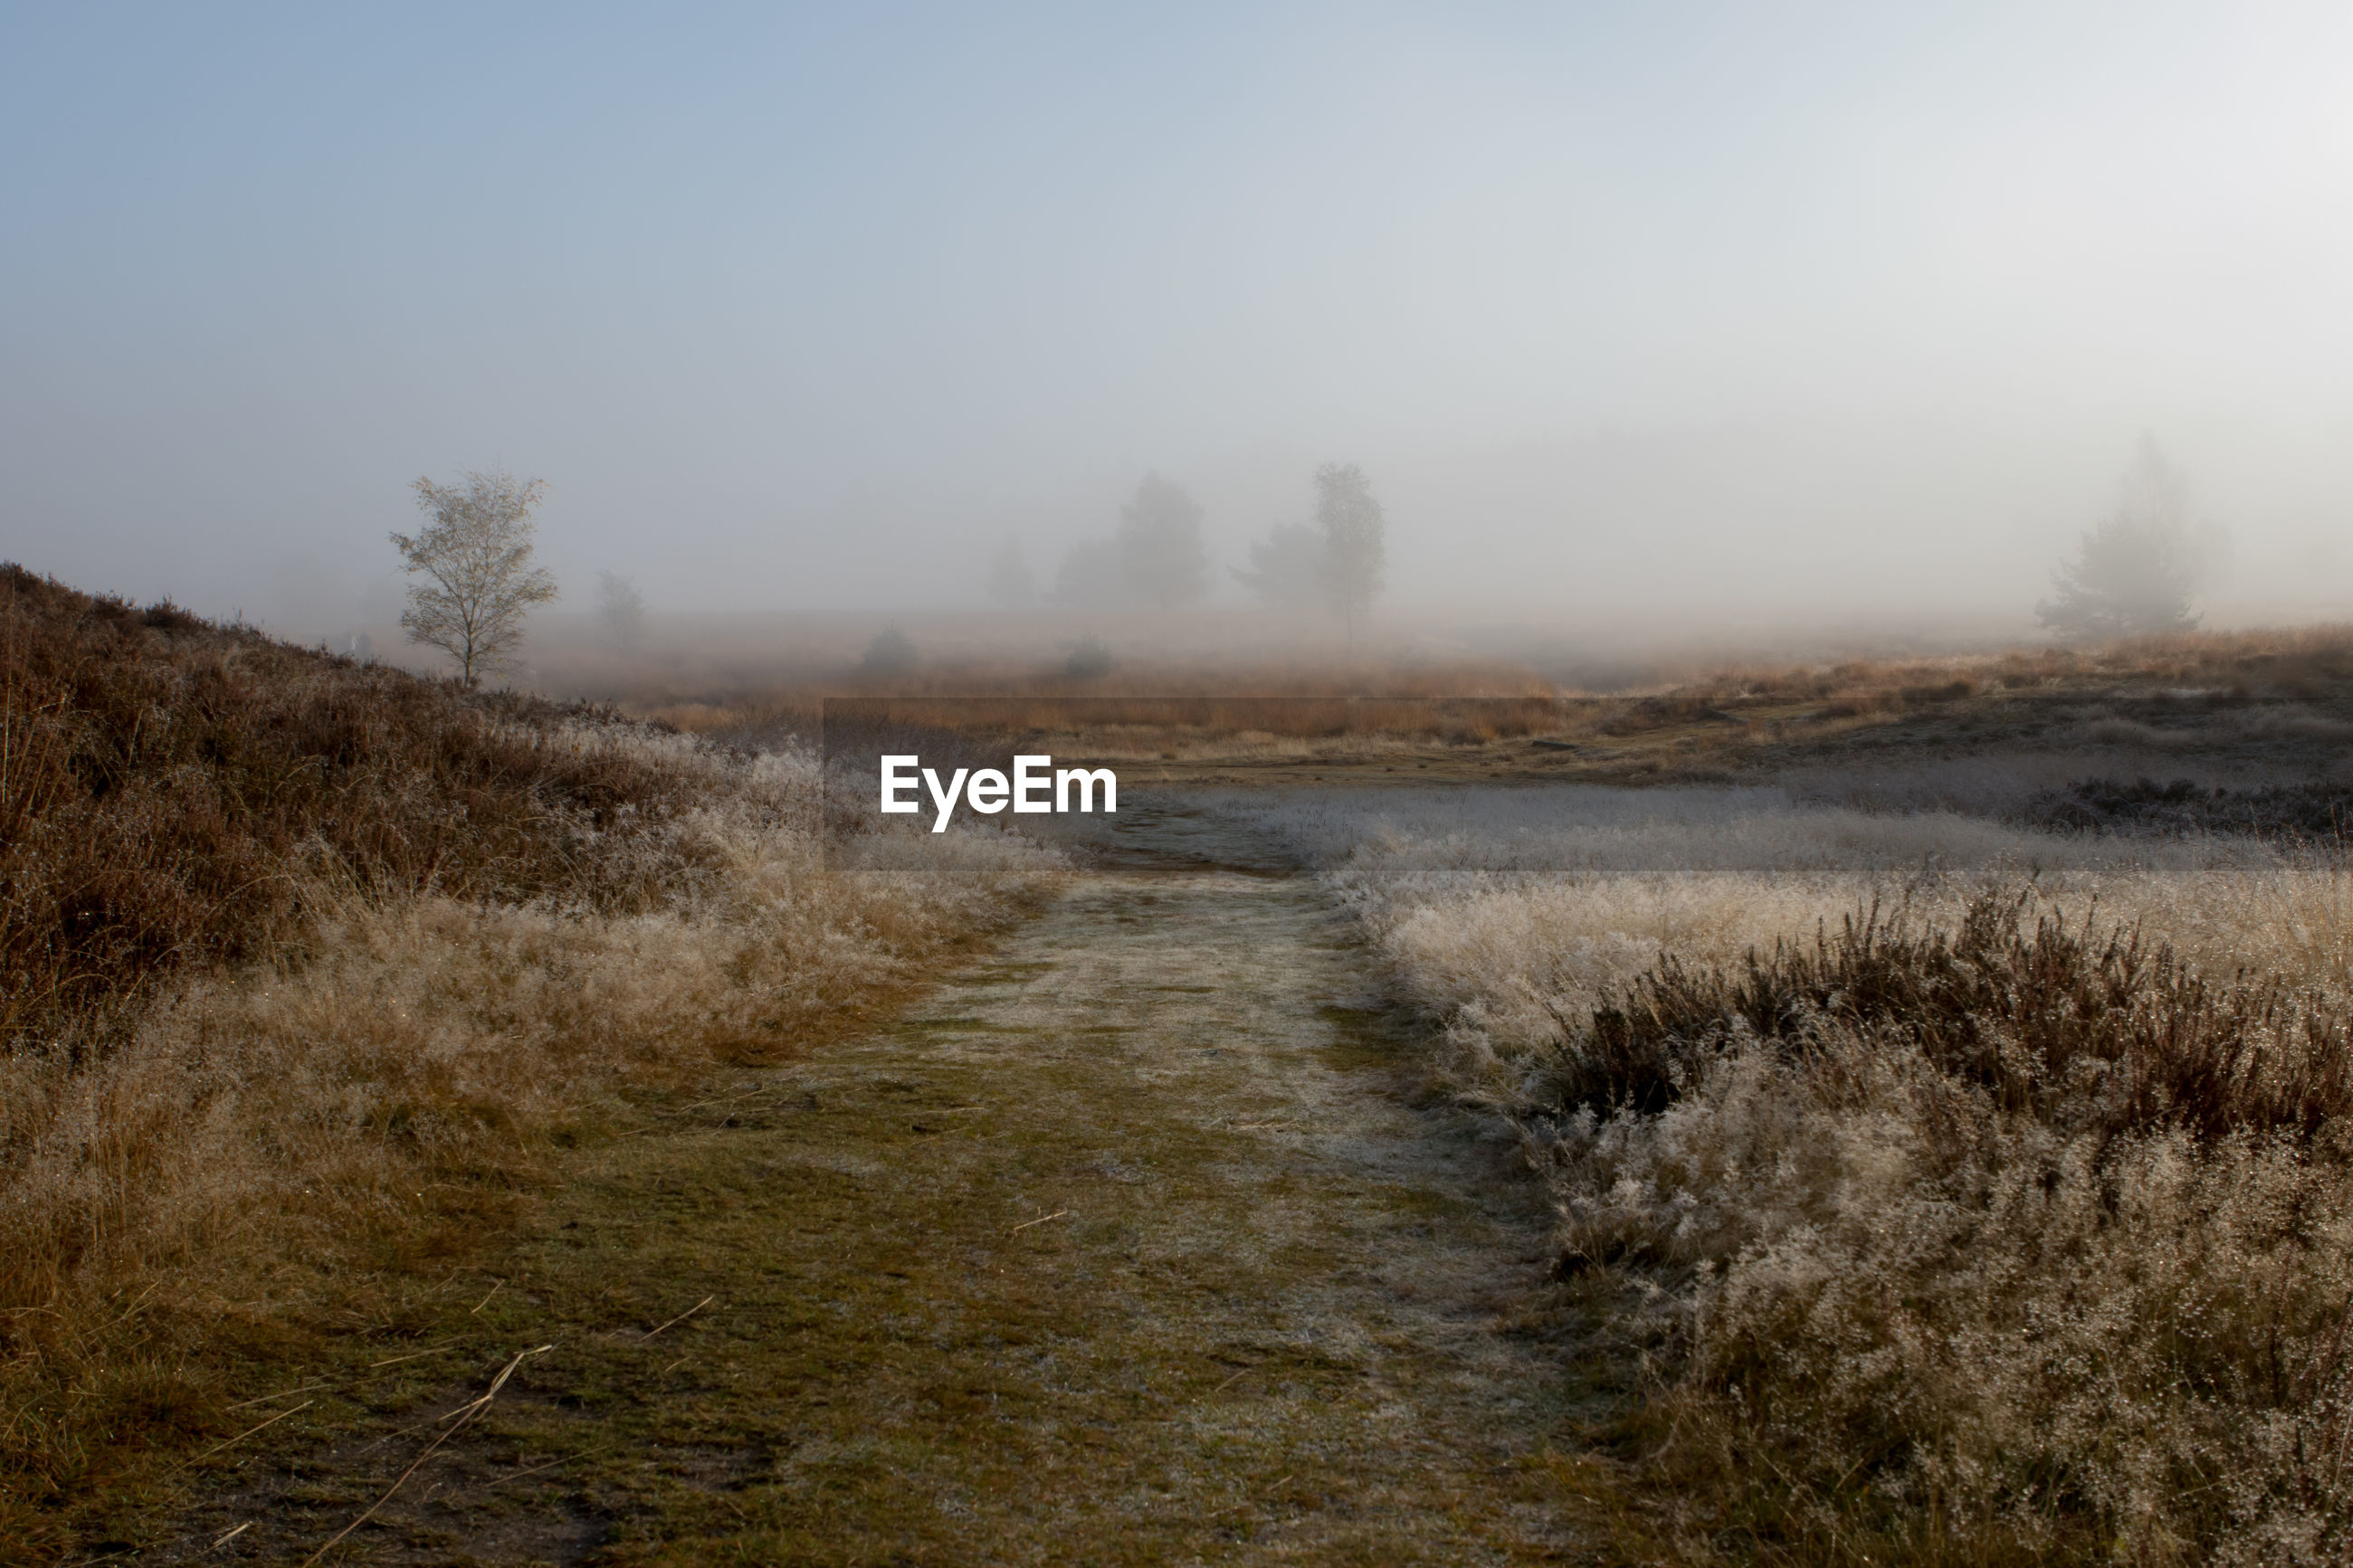 DIRT ROAD AMIDST FIELD AGAINST CLEAR SKY DURING FOGGY WEATHER